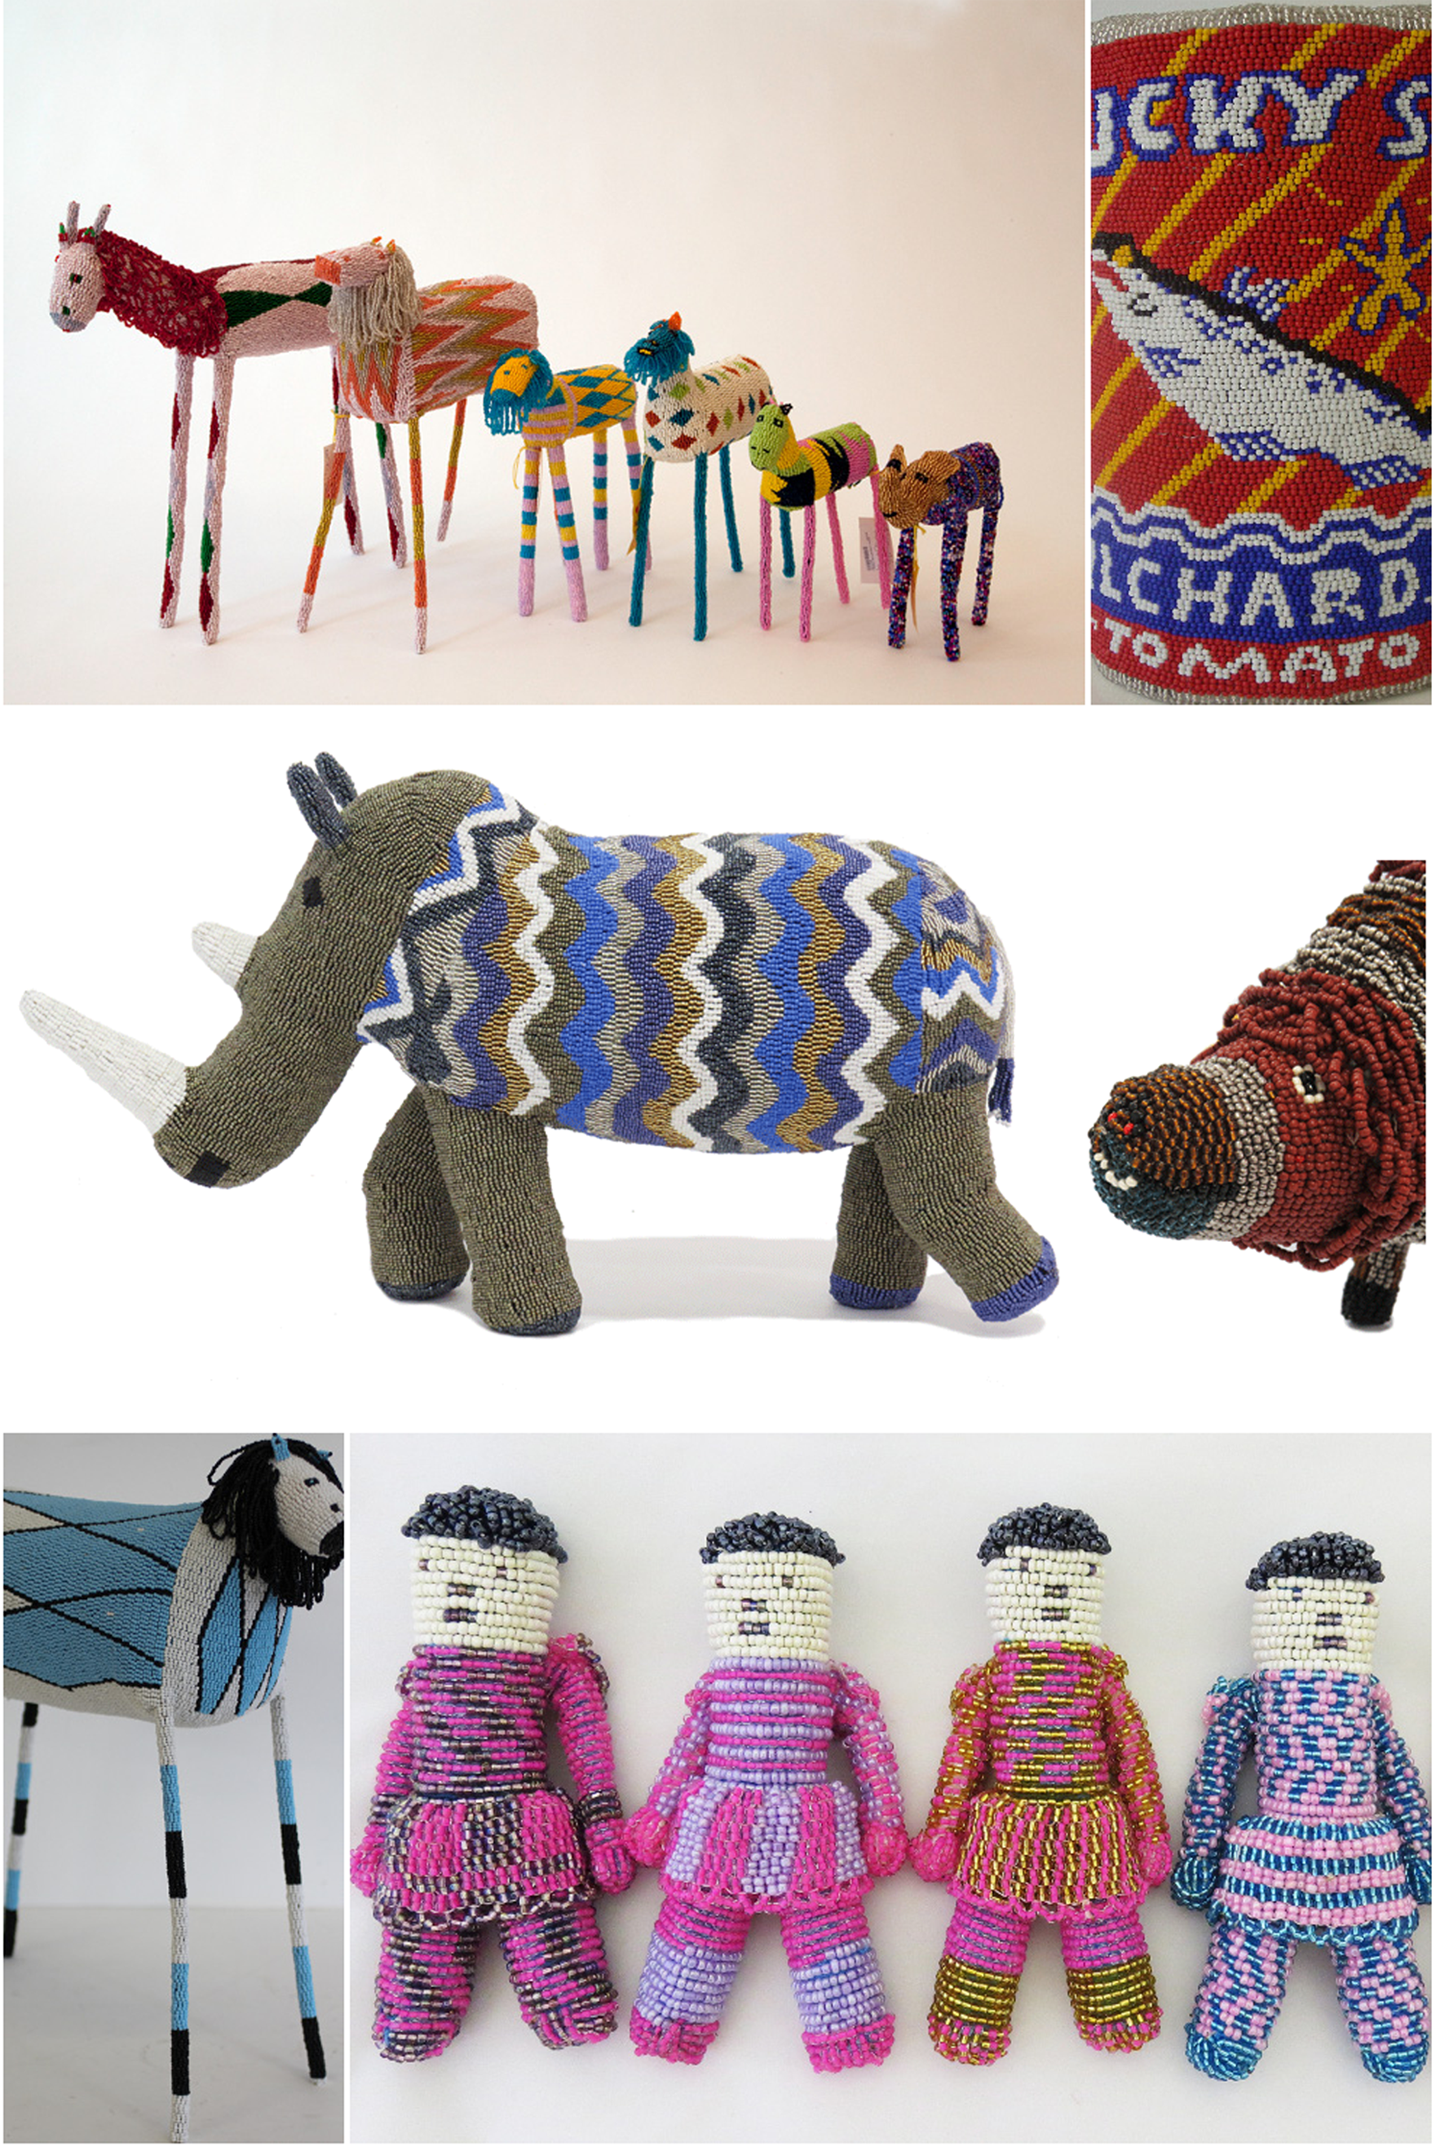 Various beaded creations from animals to dolls and food packaging